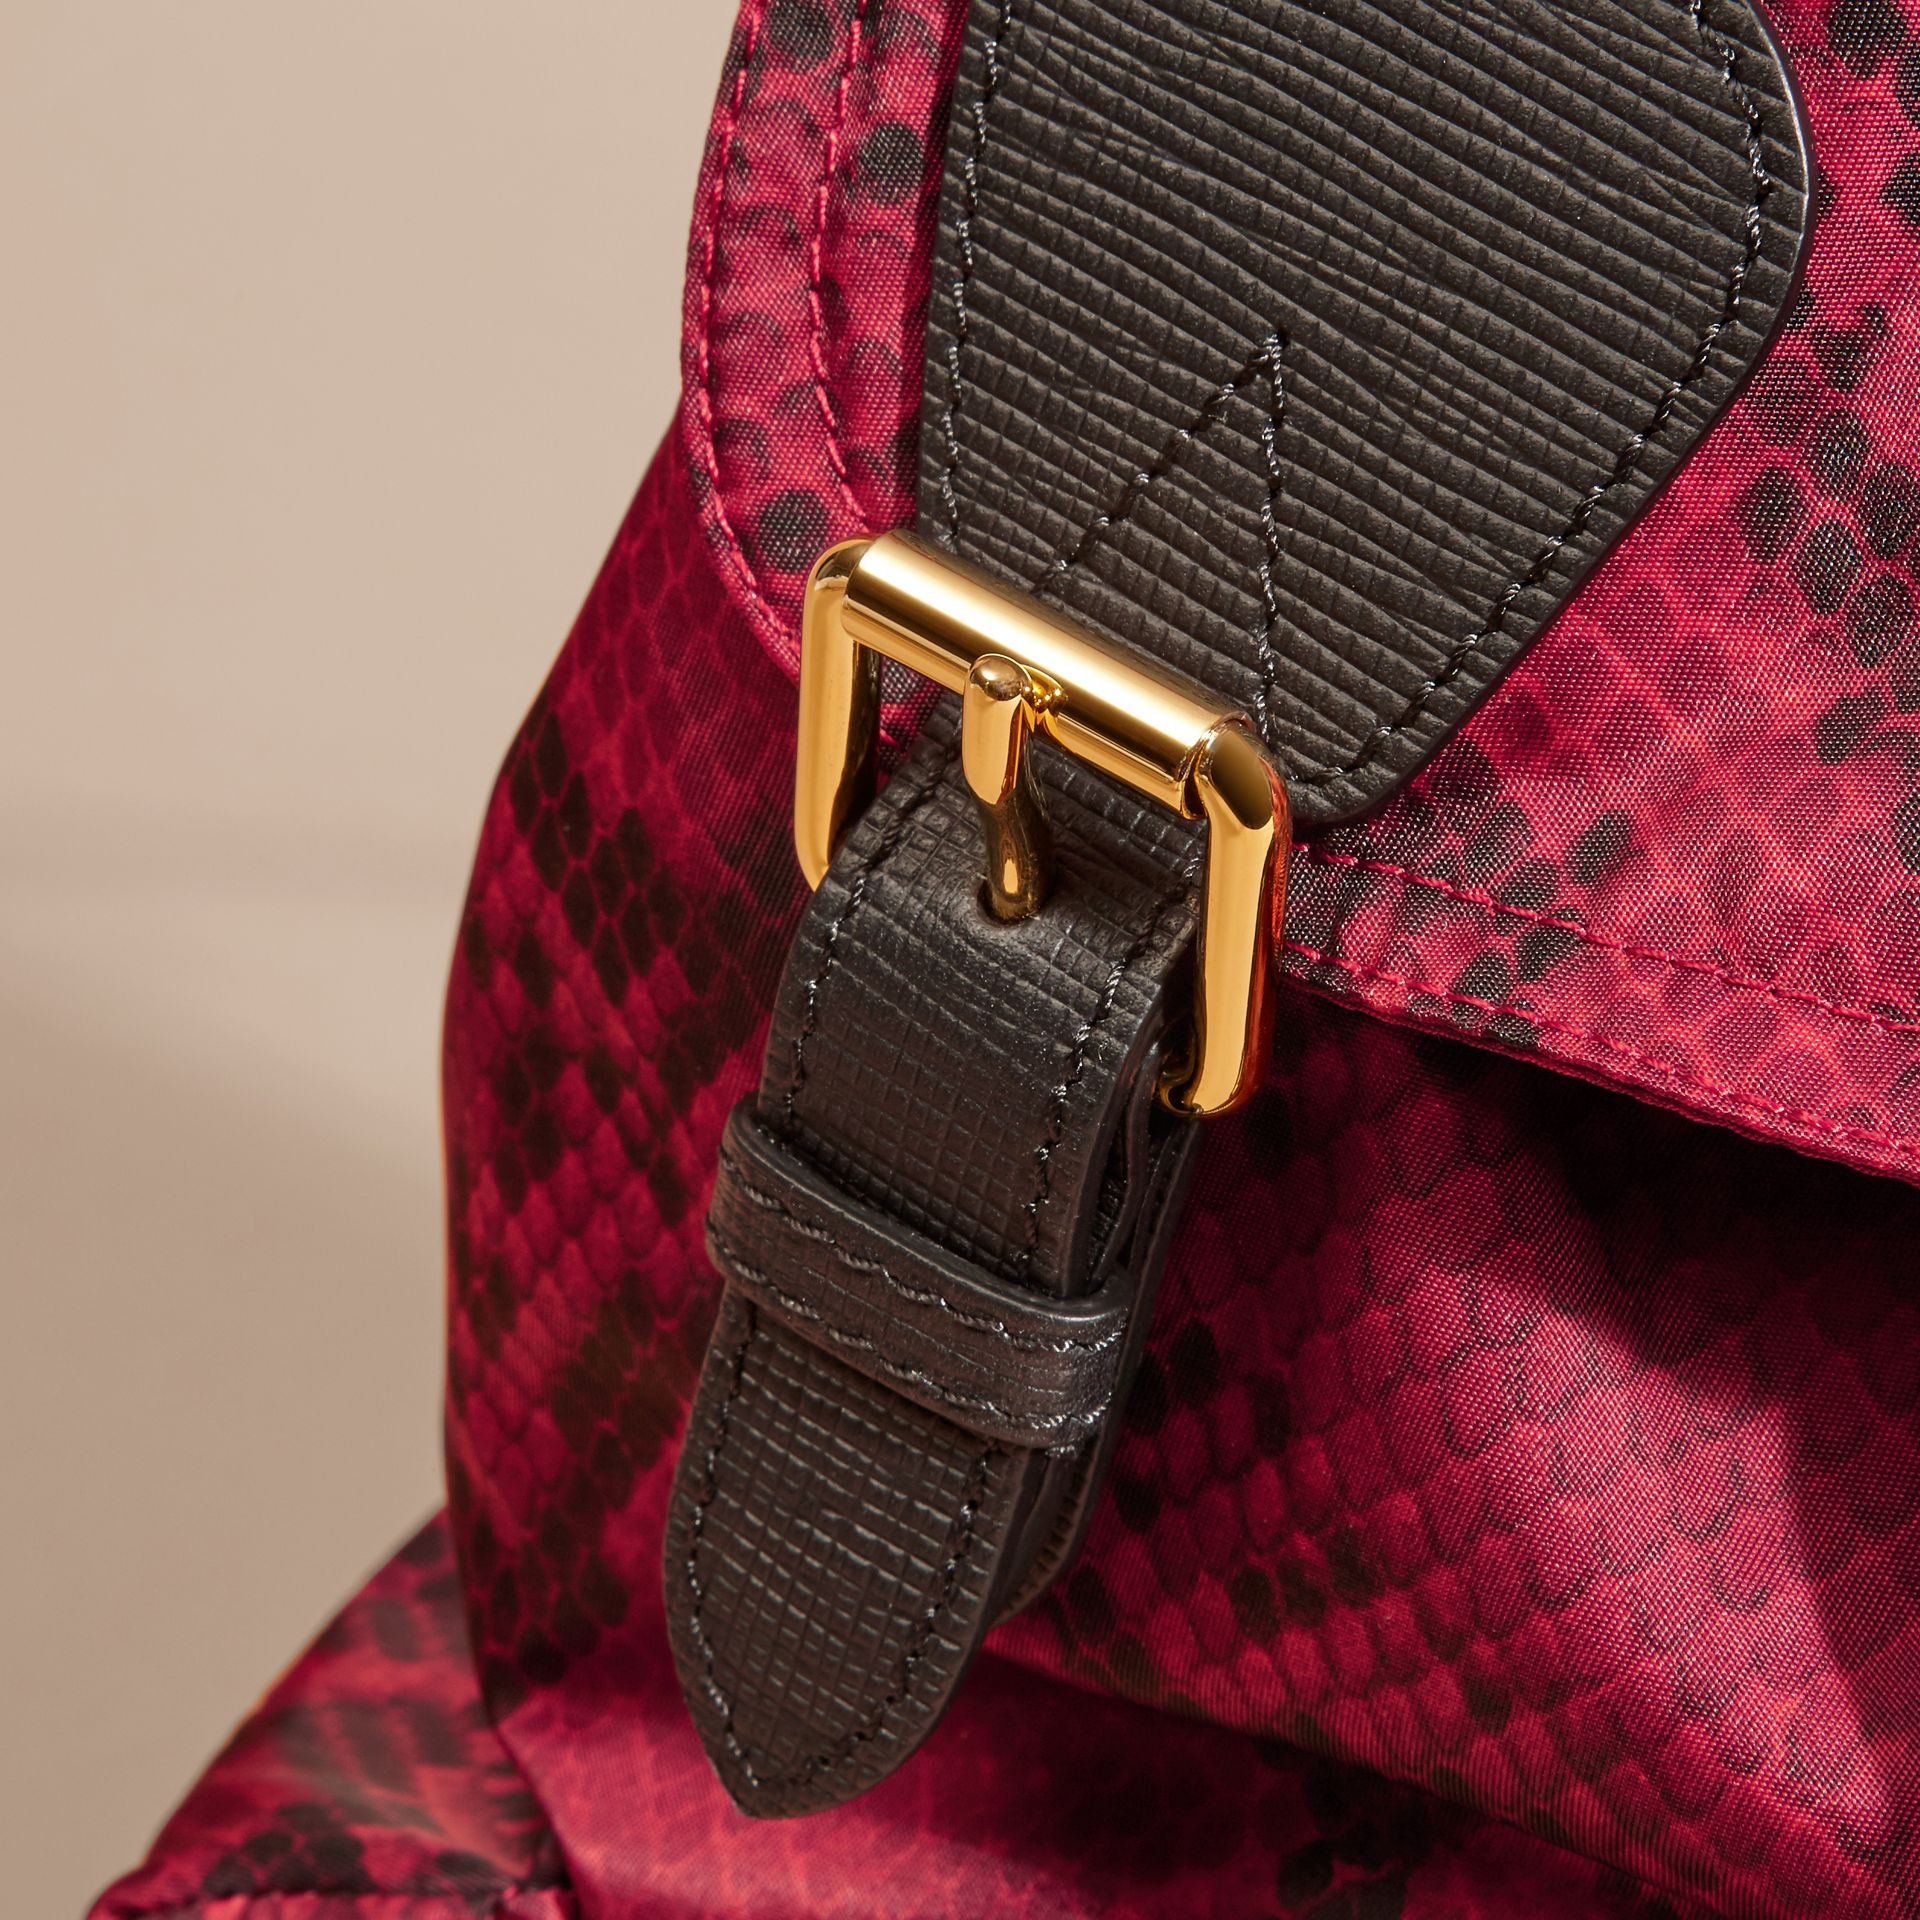 Burgundy red The Medium Rucksack in Python Print Nylon and Leather Burgundy Red - gallery image 2